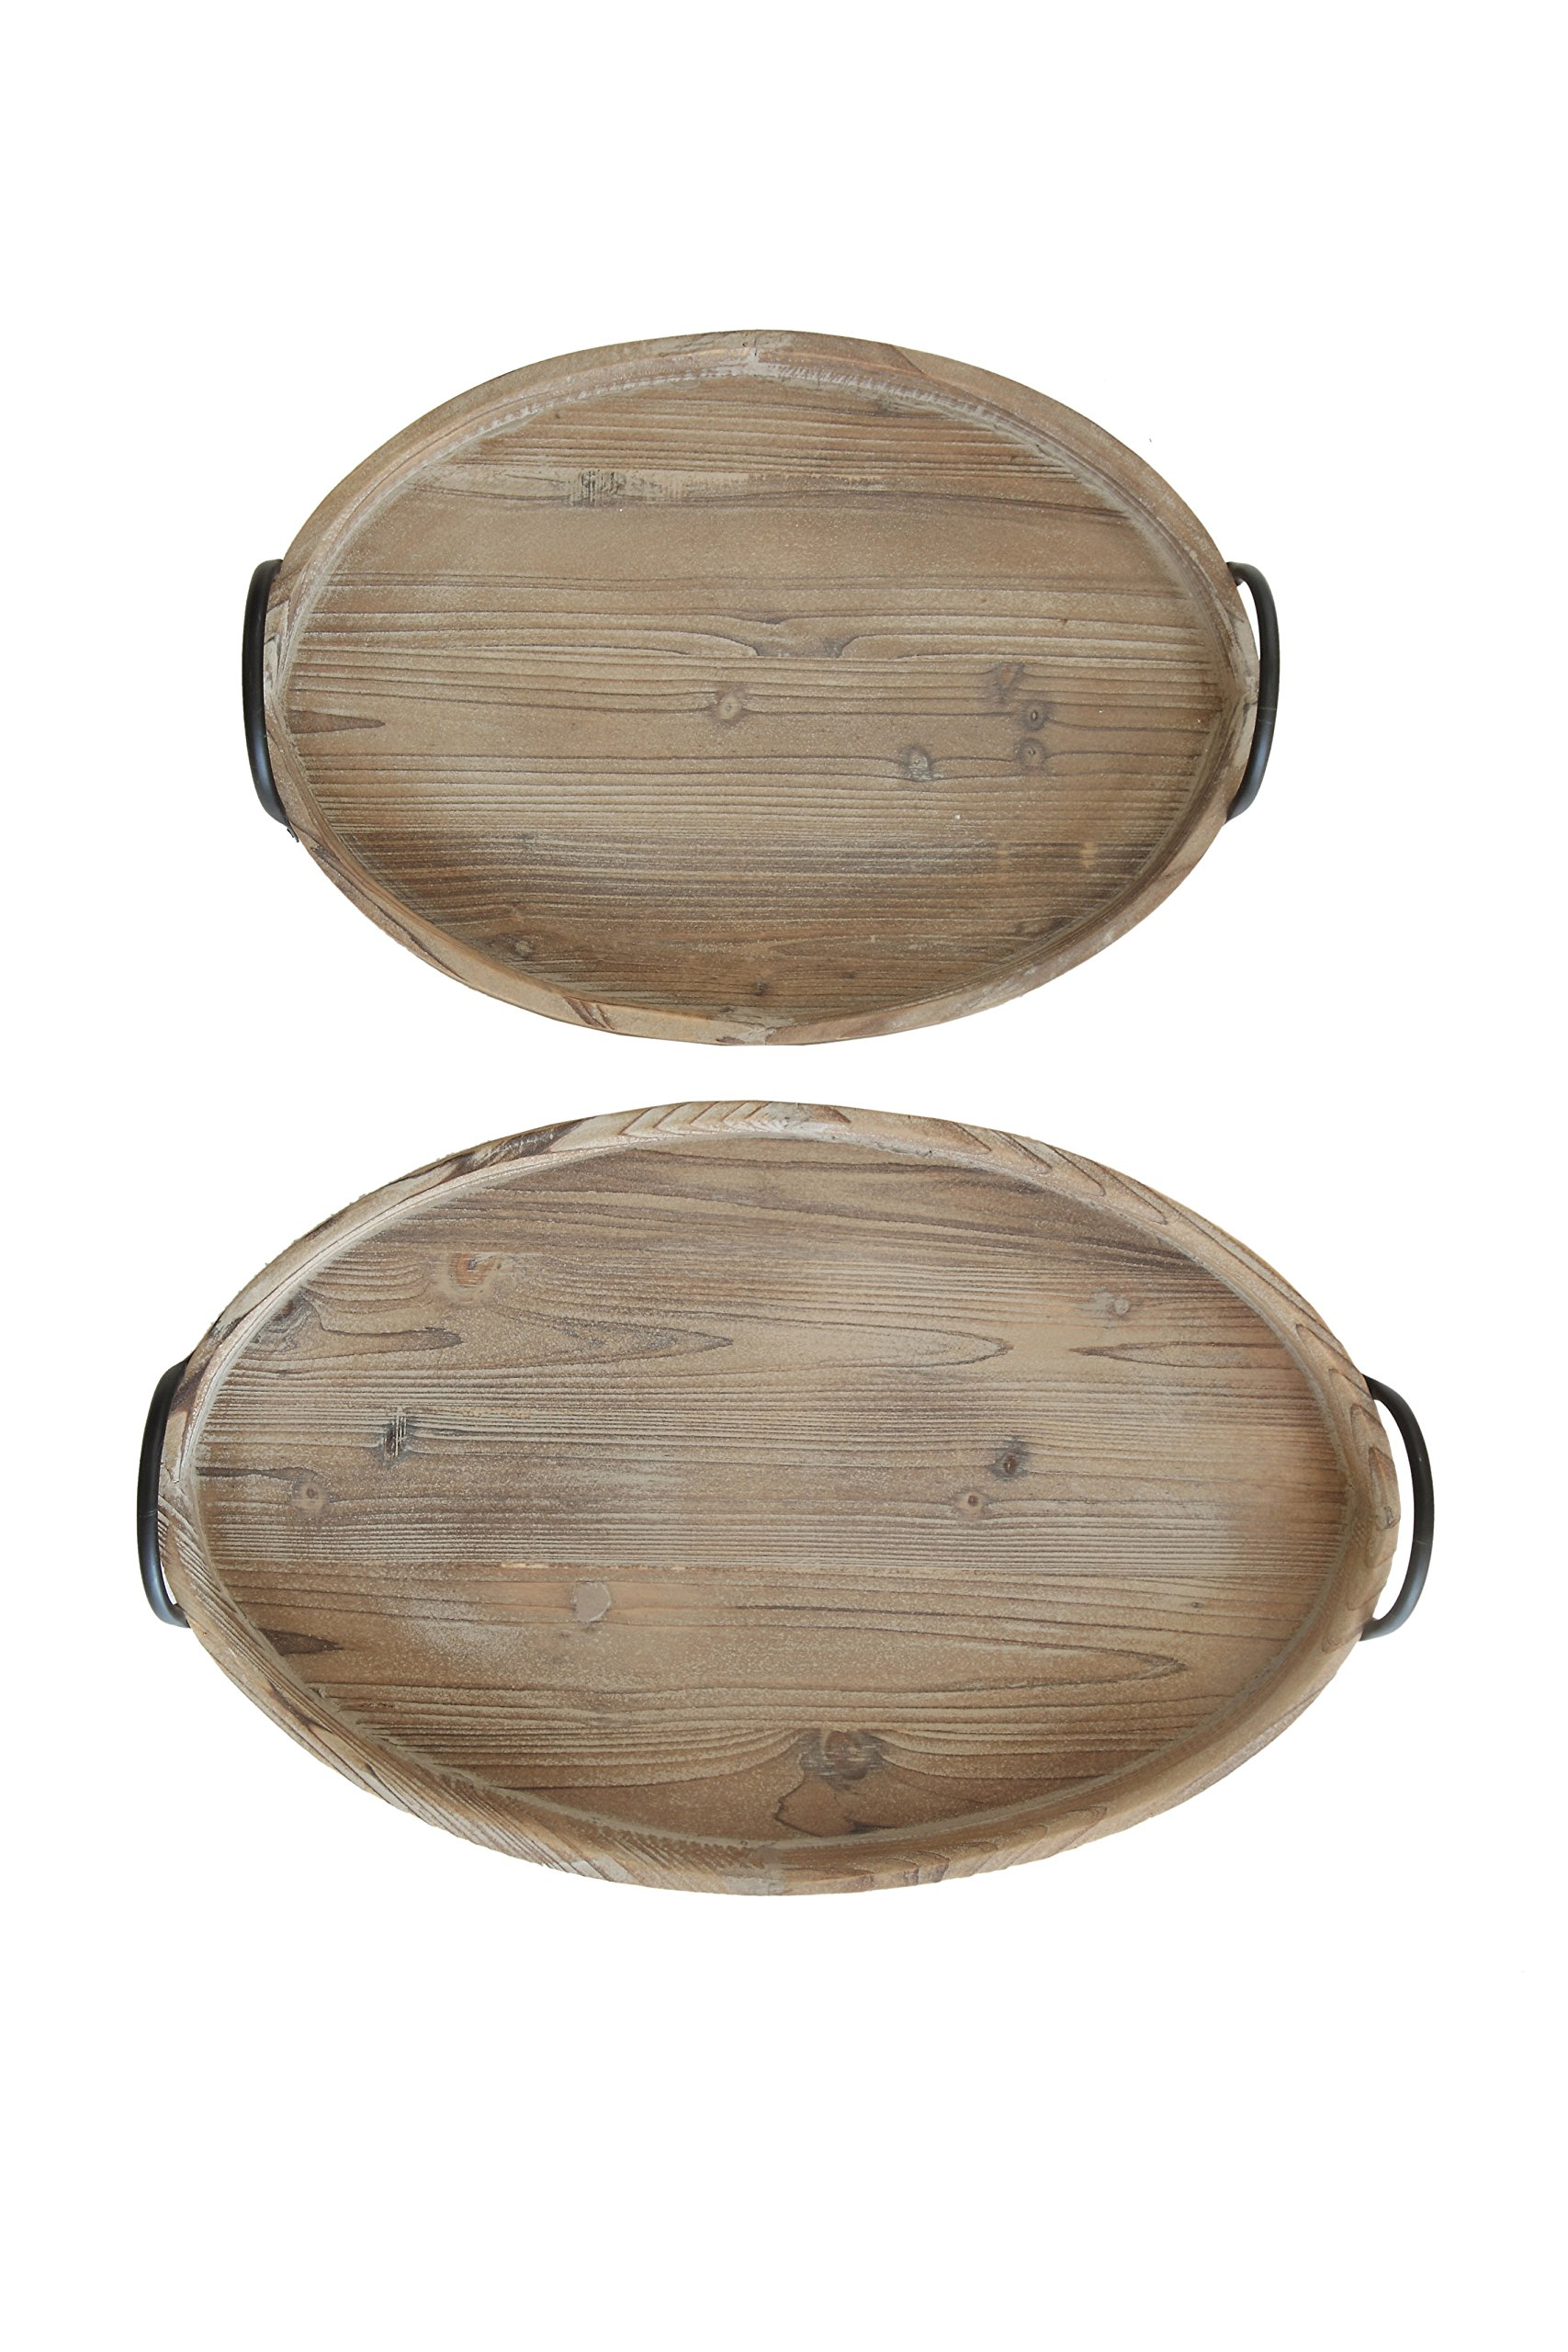 Creative Co-op Round Decorative Wood Trays with Metal Handles (Set of 2 Sizes) by Creative Co-op